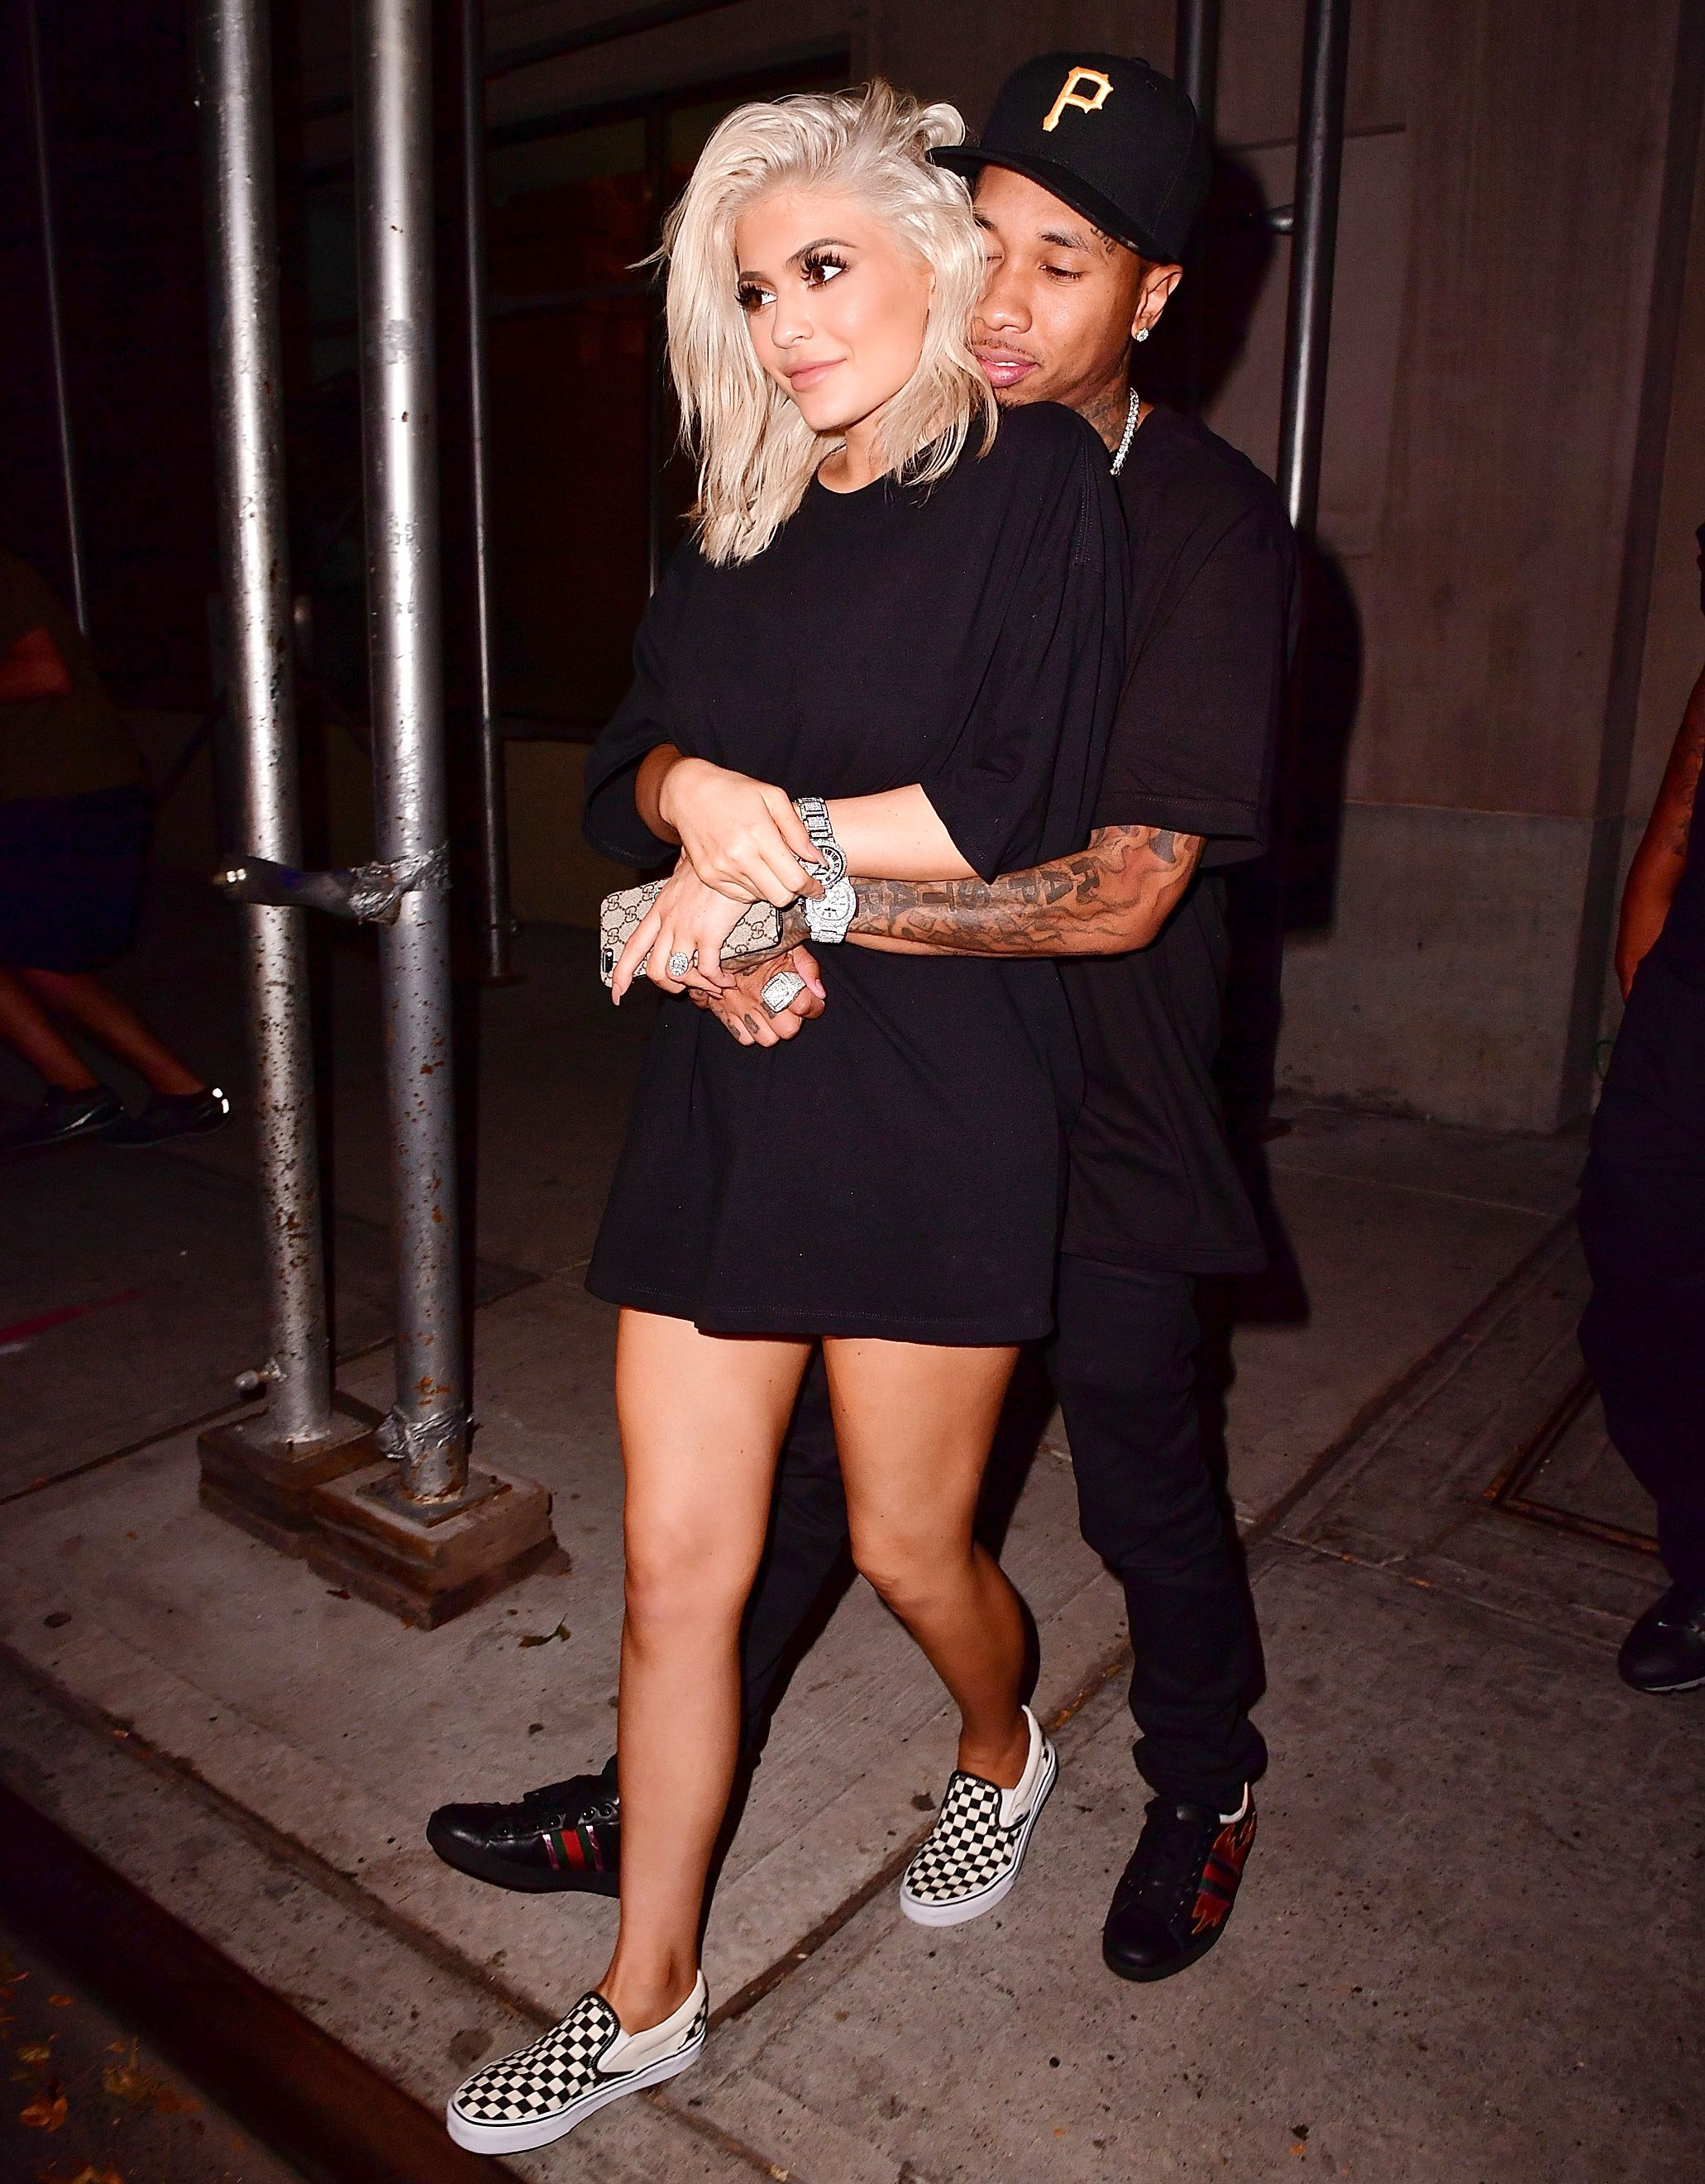 Kylie Jenner Rocks Slip On Sneakers And Goes Without Pants For Night Out With Checkered Outfit Jenner Outfits Checkered Vans Outfit [ 2641 x 2062 Pixel ]